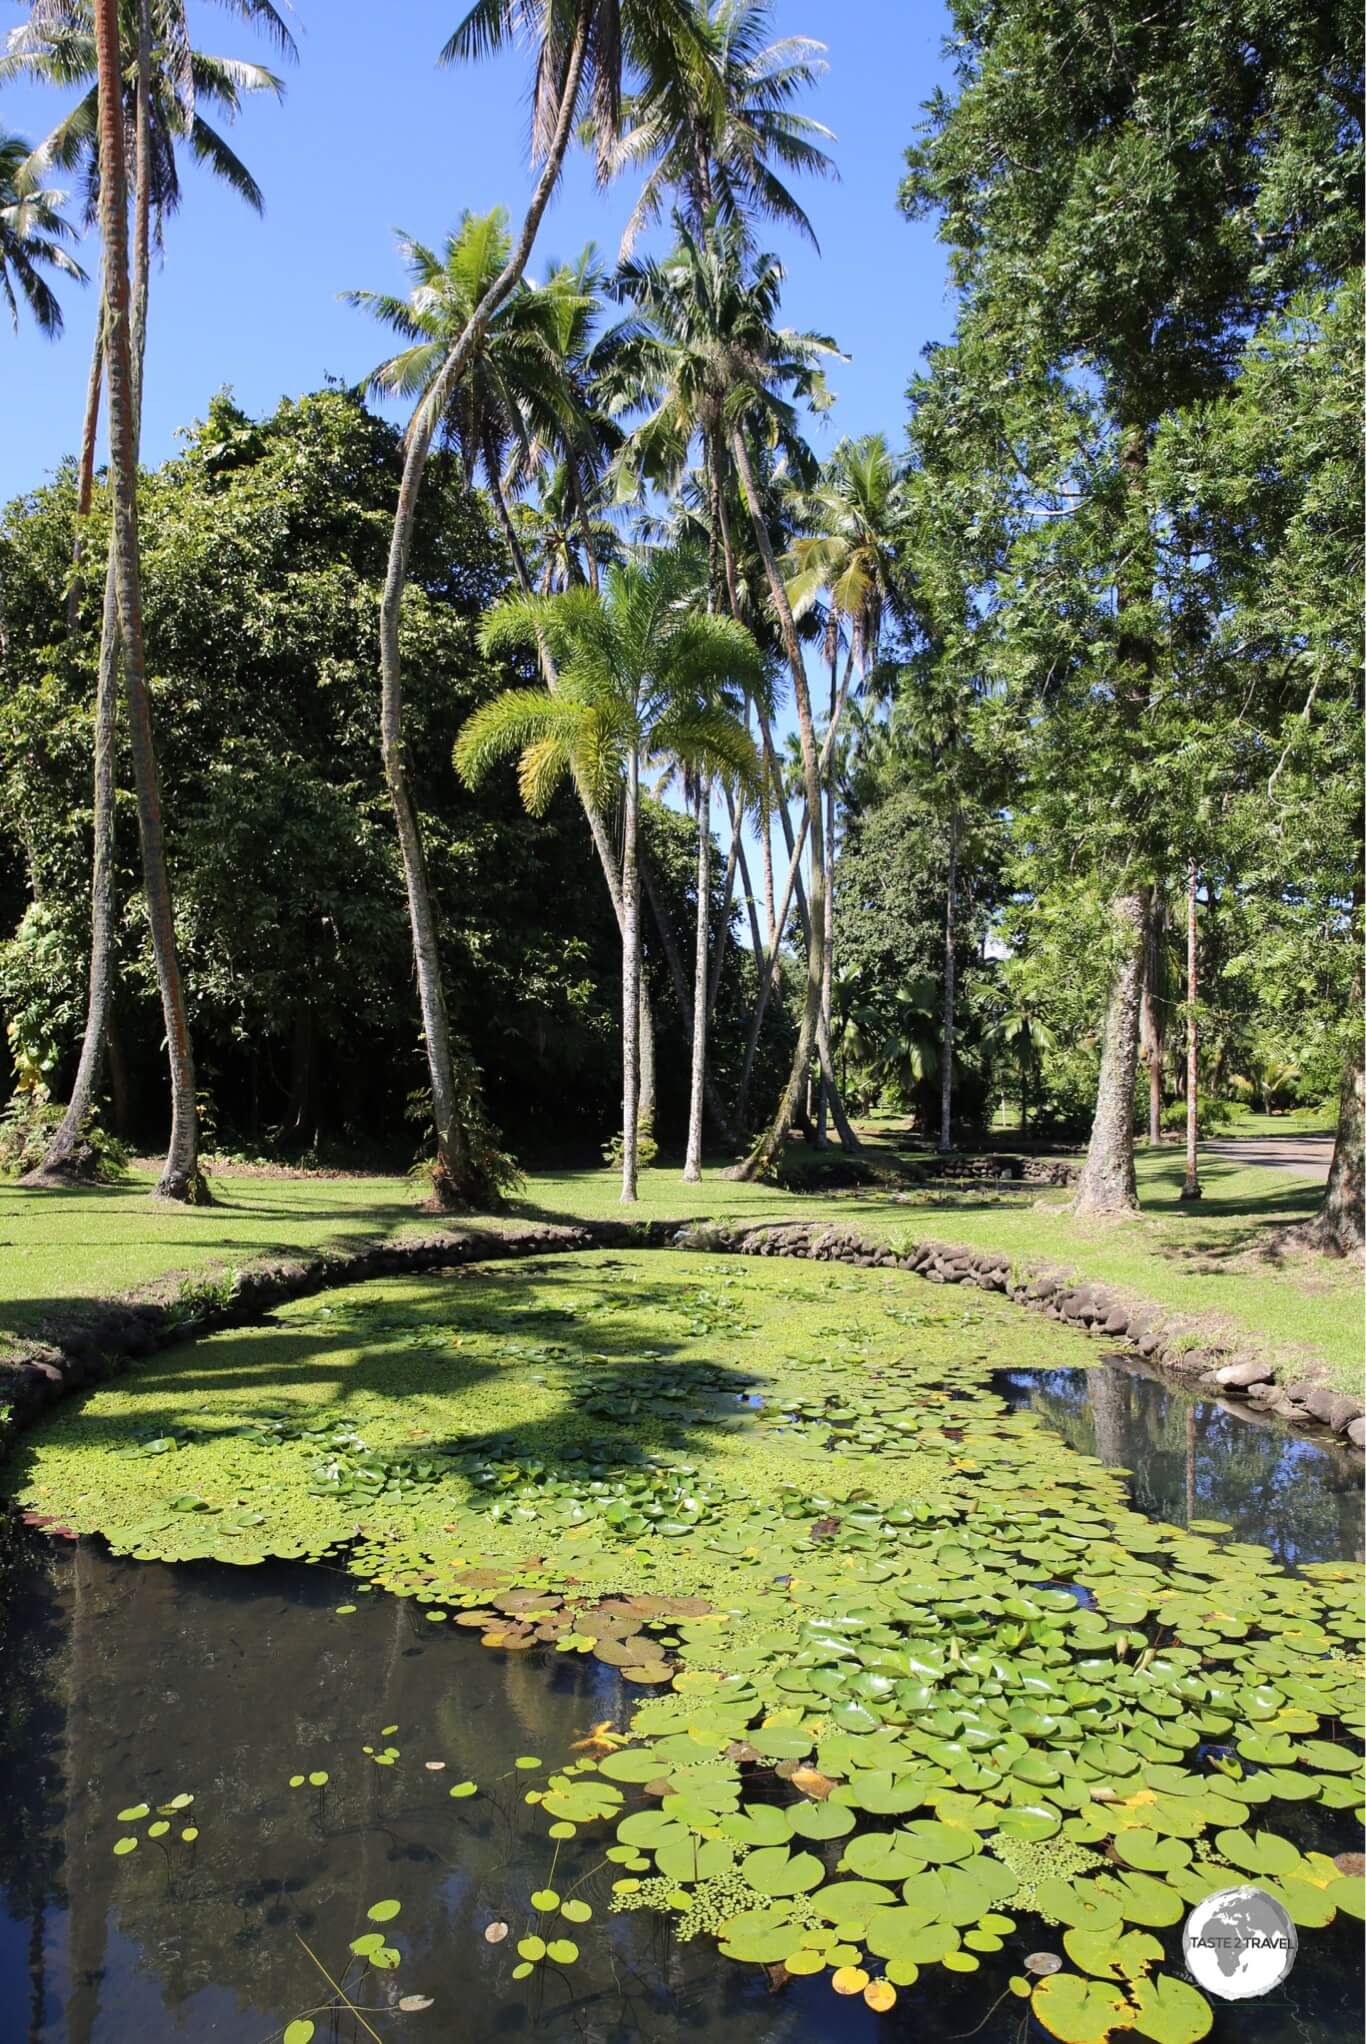 The grounds of the Harrison Smith Botanical Garden.